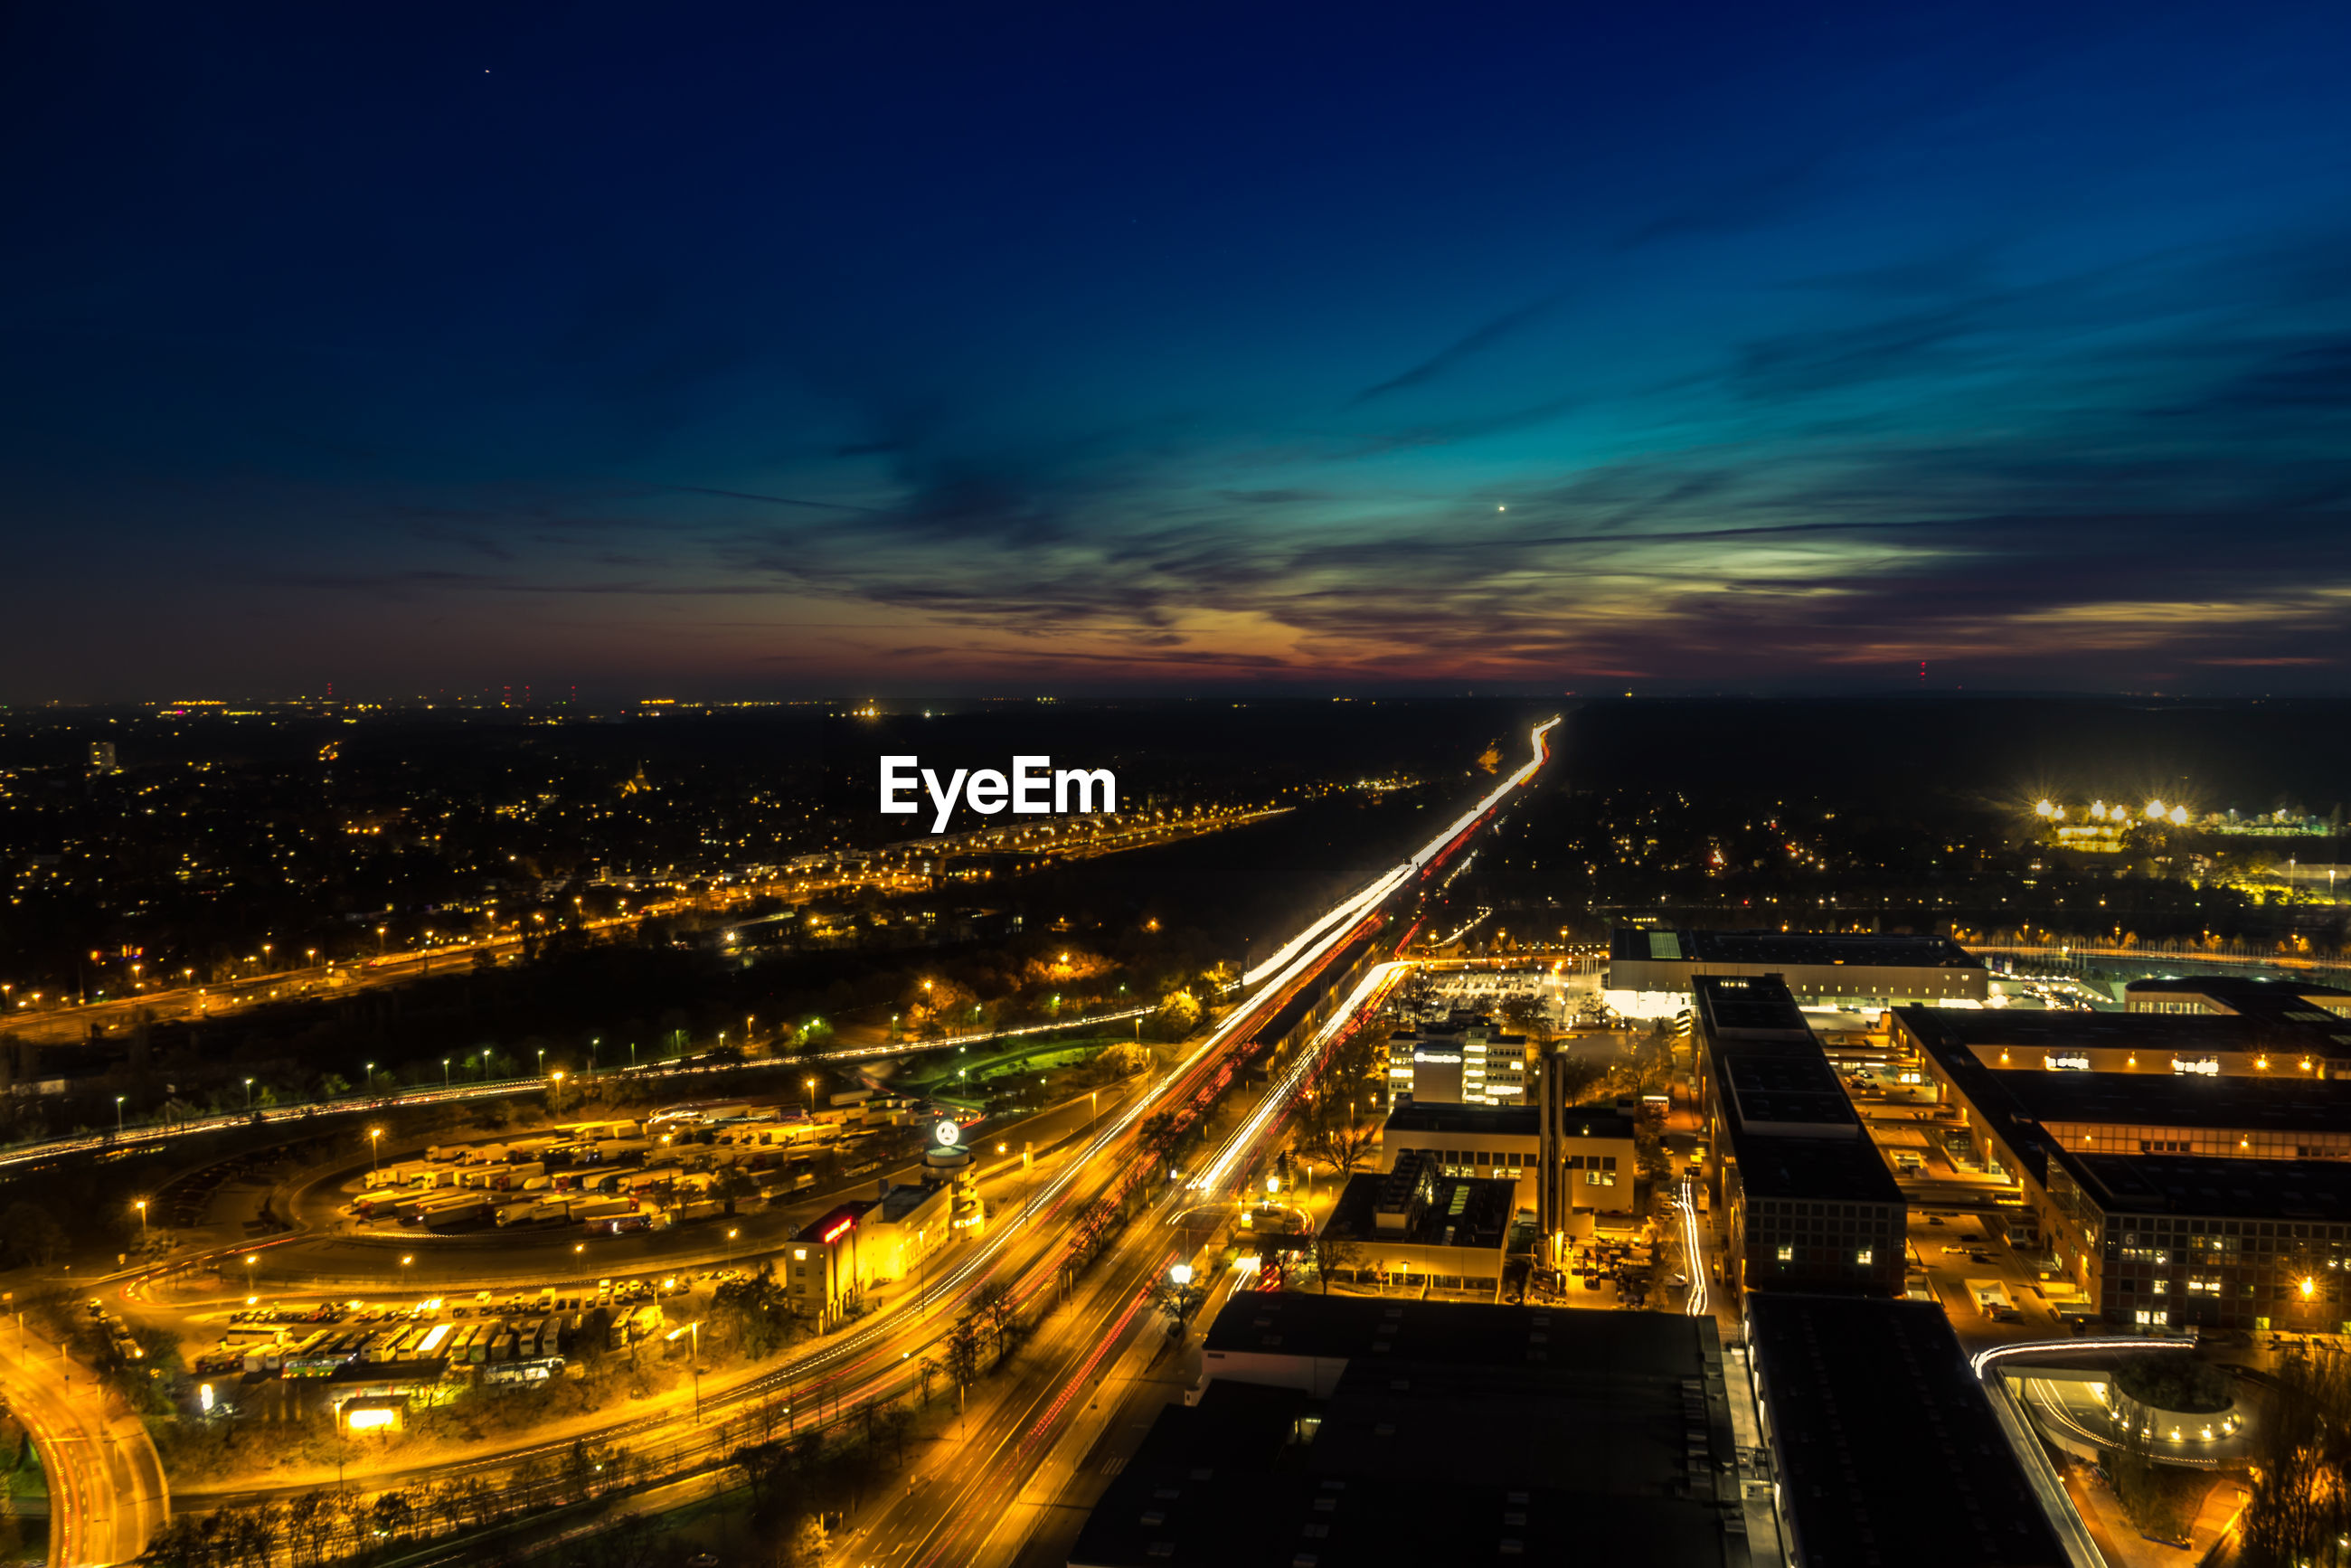 HIGH ANGLE VIEW OF LIGHT TRAILS ON HIGHWAY IN CITY